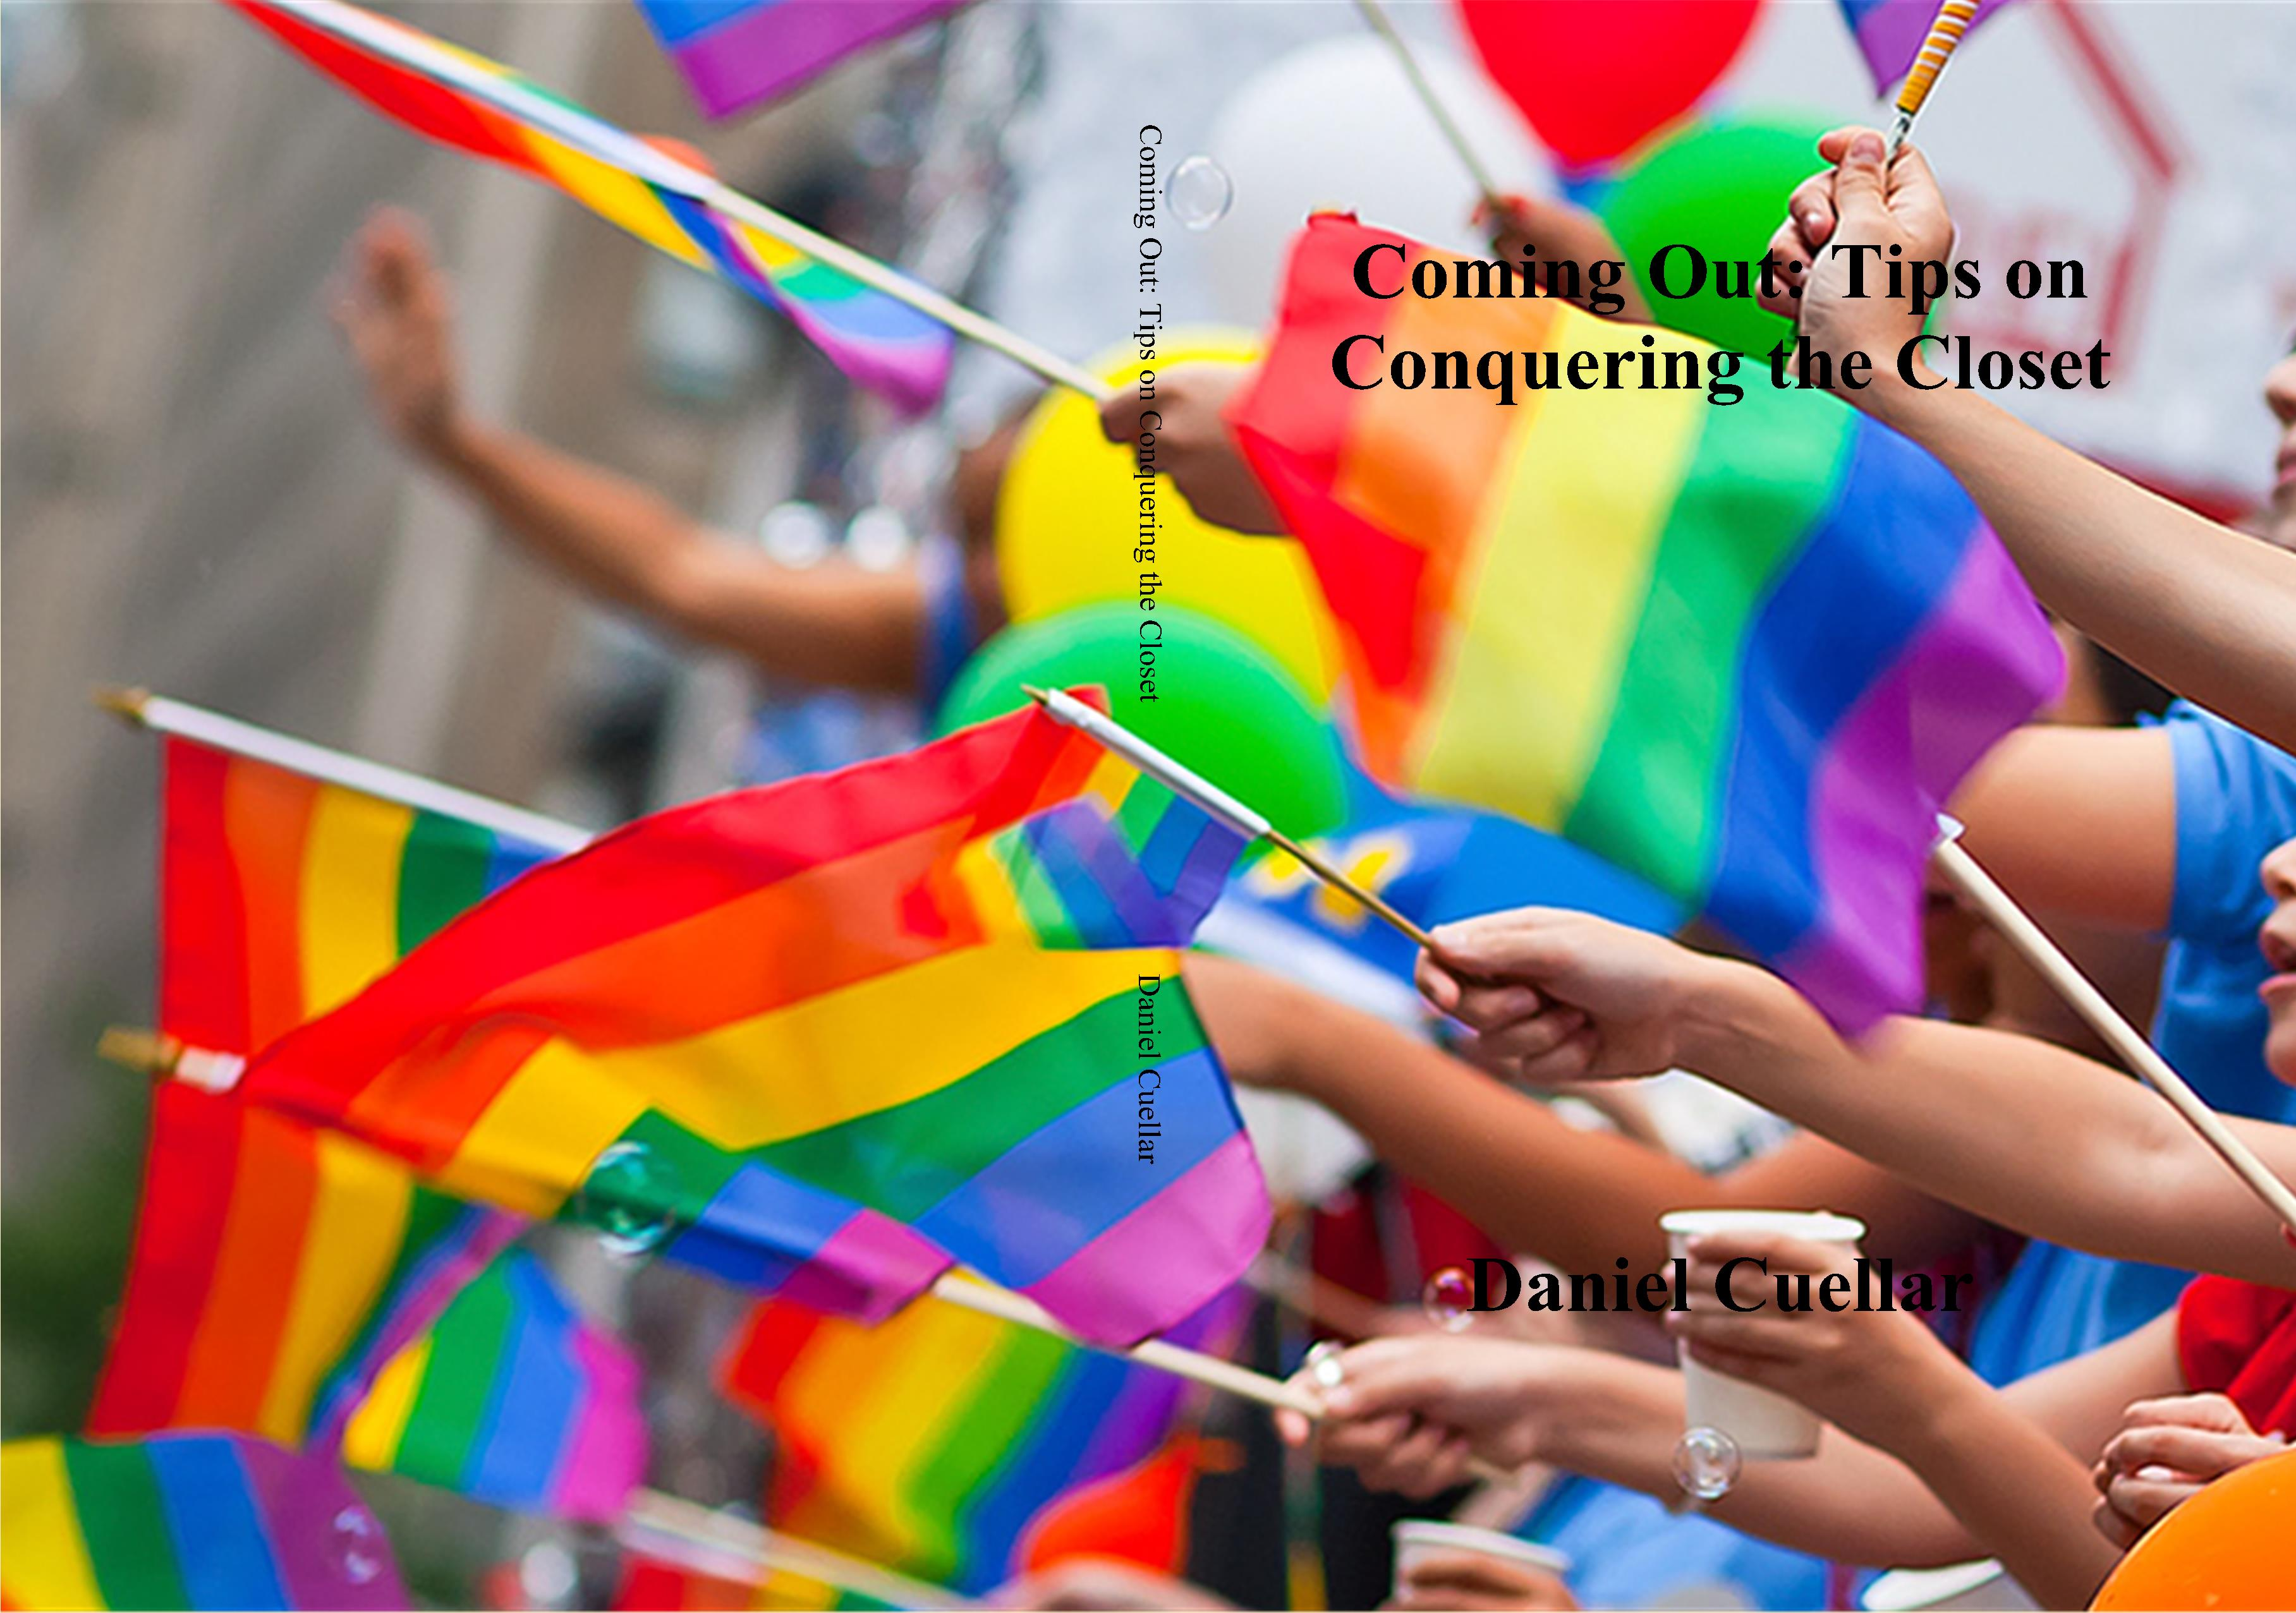 Coming Out: Tips on Conquering the Closet cover image